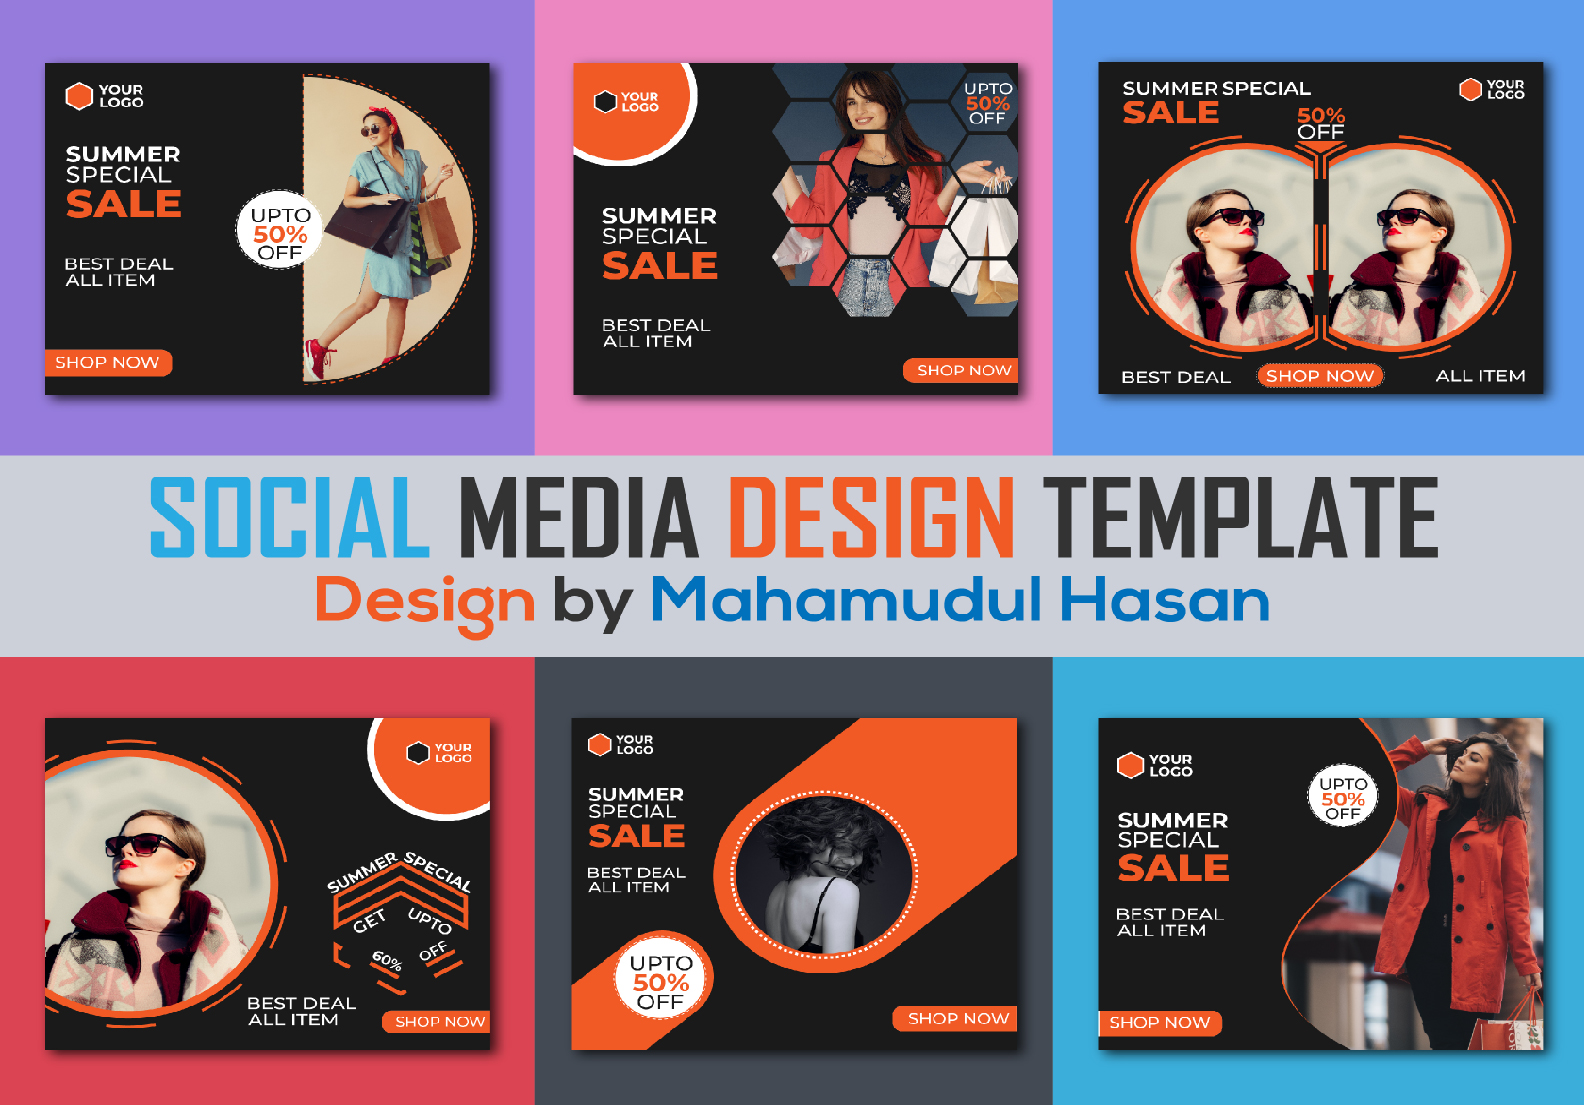 I will create trendy social media design template